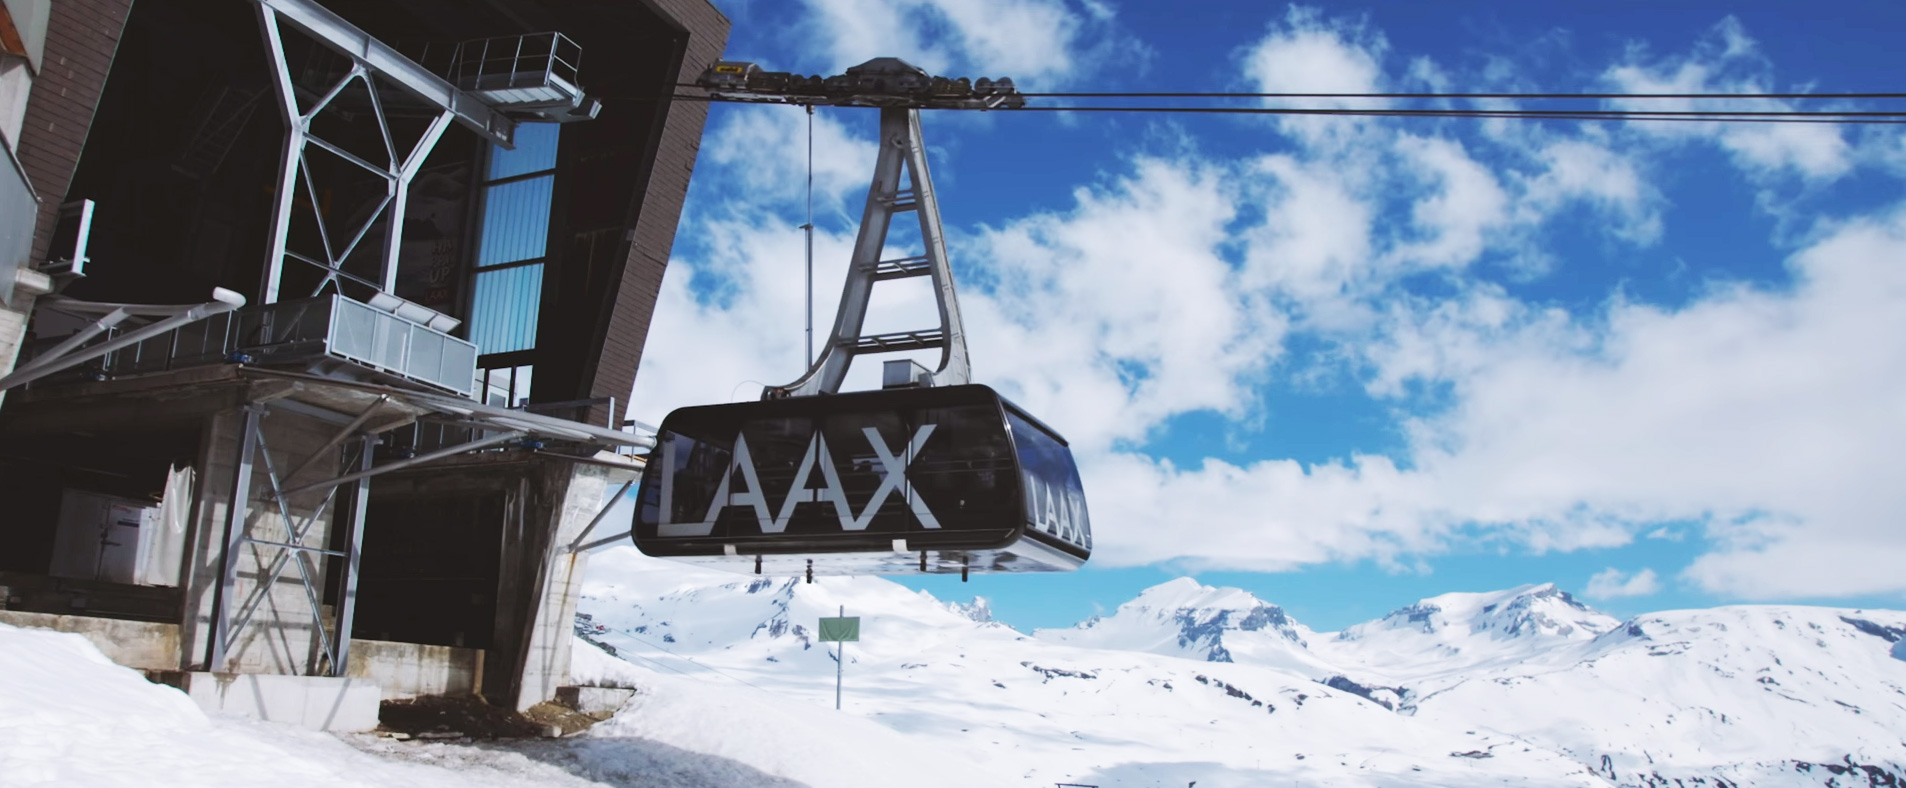 laax-afterparty-5